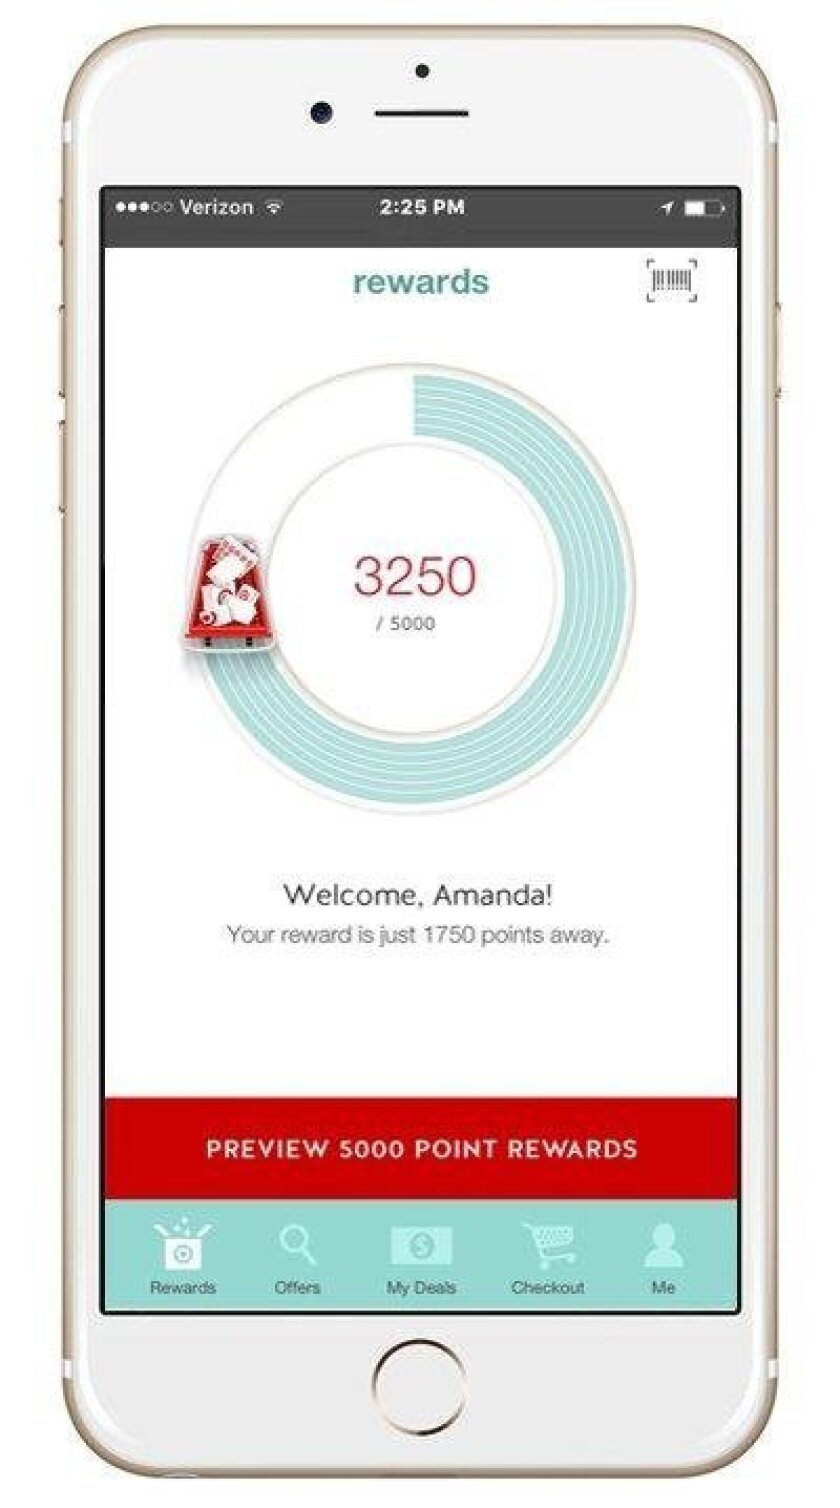 The Perks tab includes a dial that shows the customer's progress toward a reward, which can redeemed once the person reaches 5,000 points.